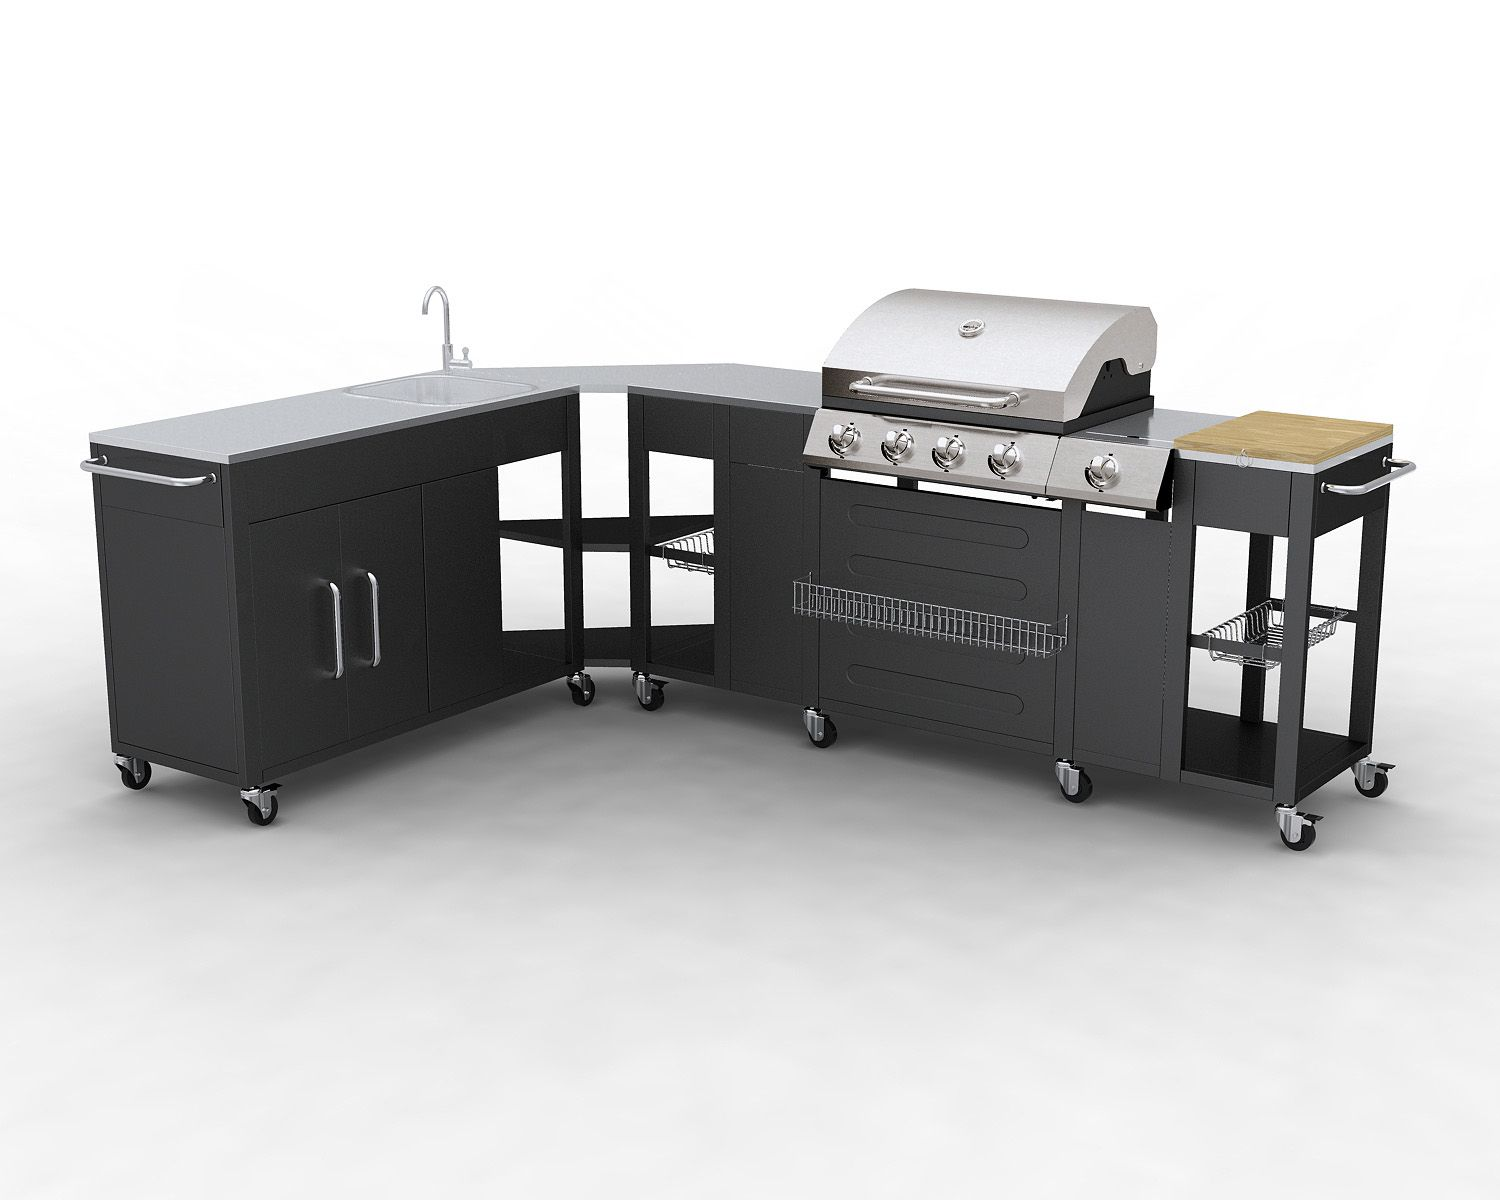 Meuble Barbecue Barbecue Gaz Inox Grand Meuble Cuisine D 39angle Modulable